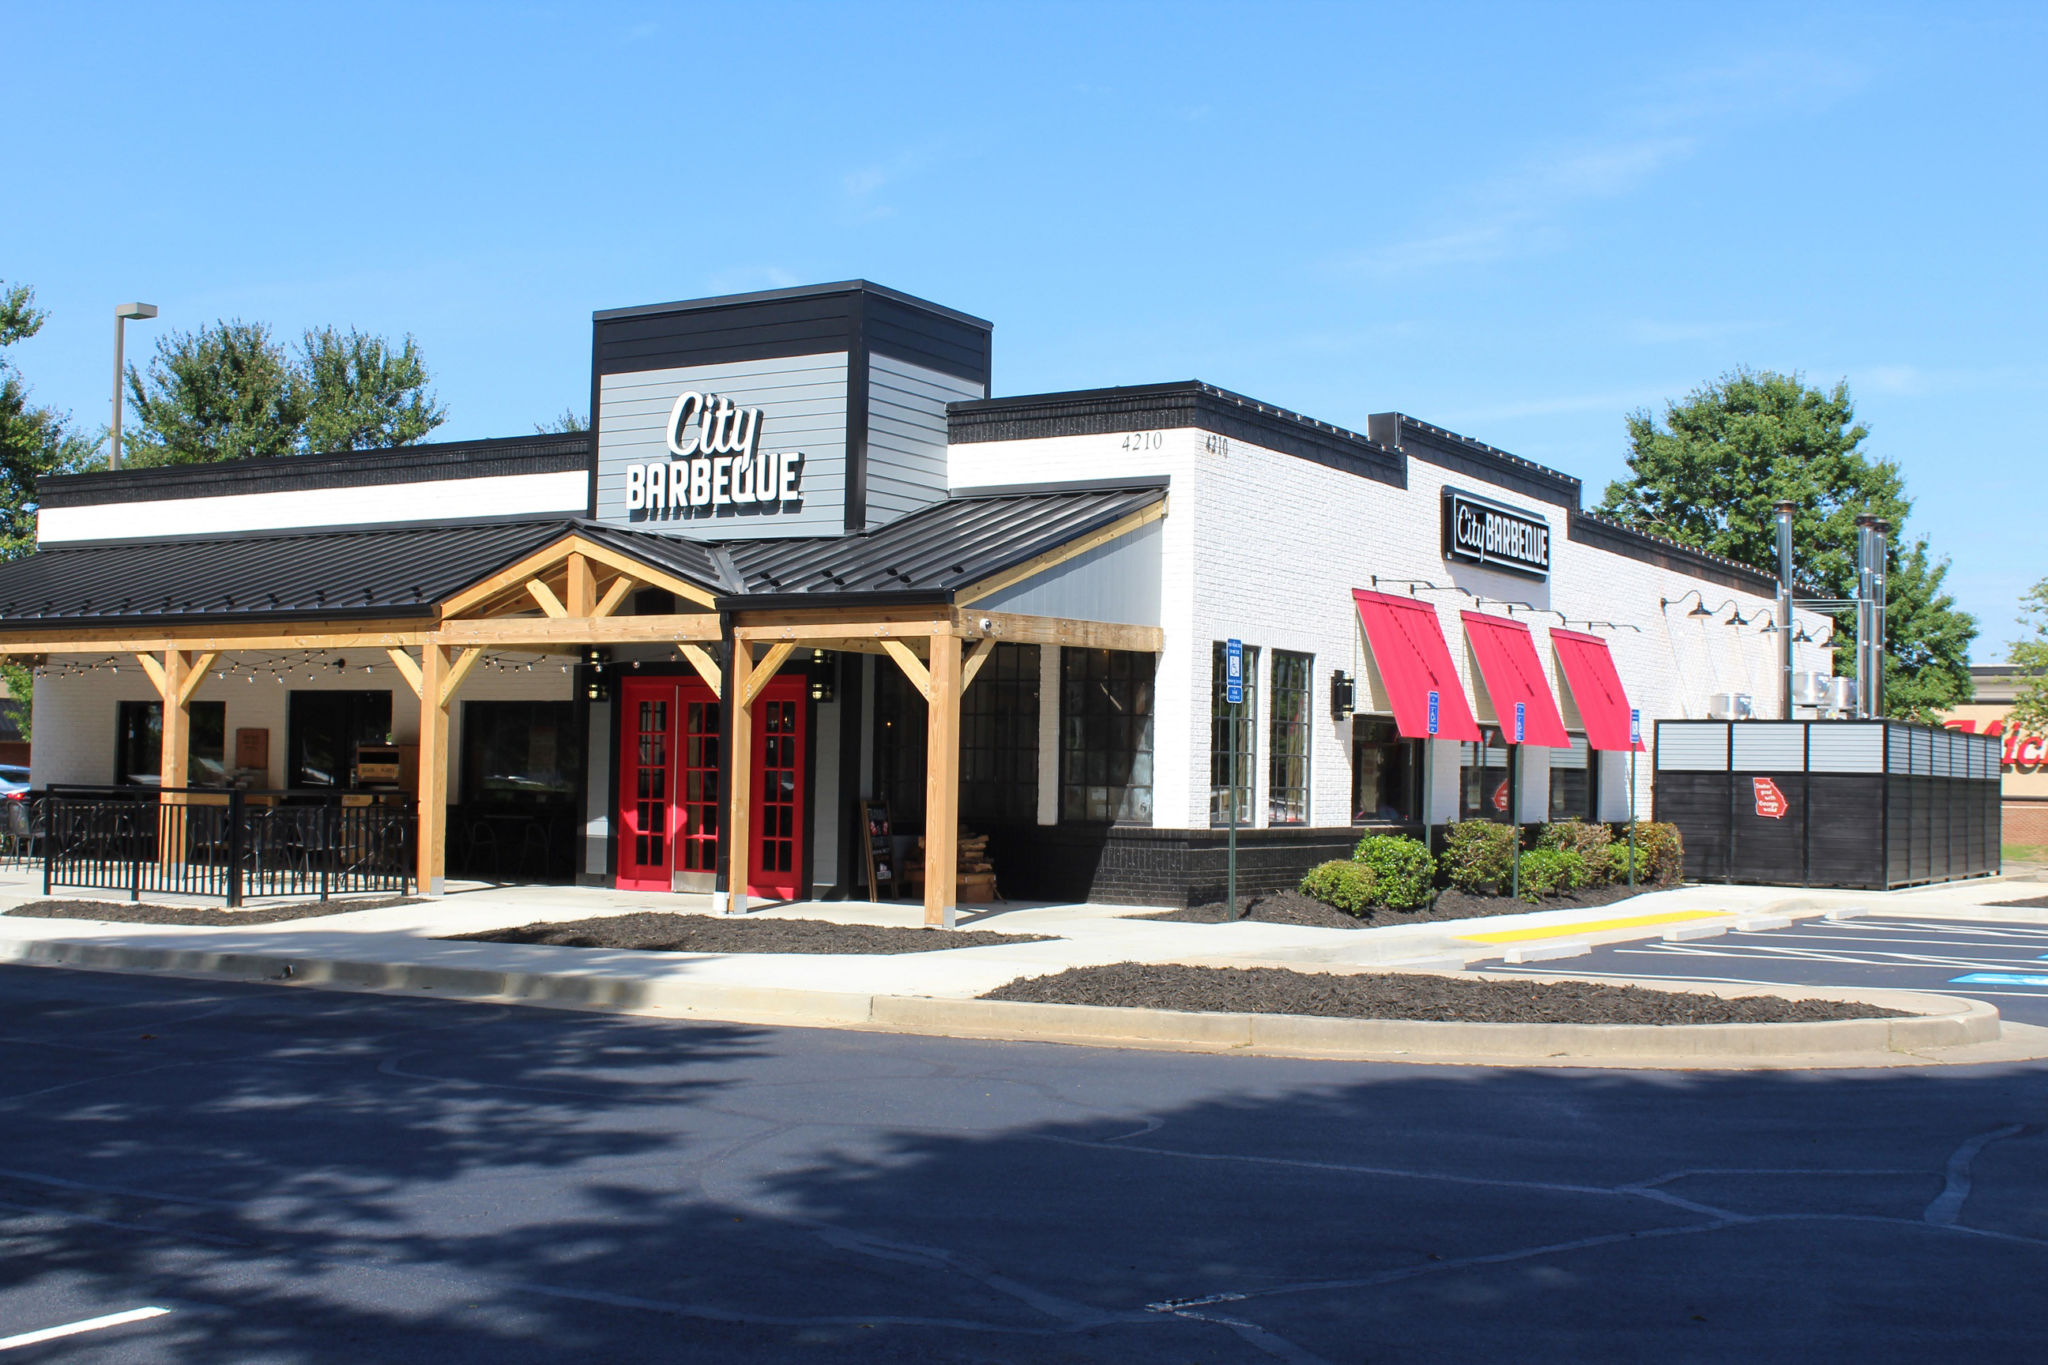 City Barbeque Johns Creek To Open June 25 With Five-Day